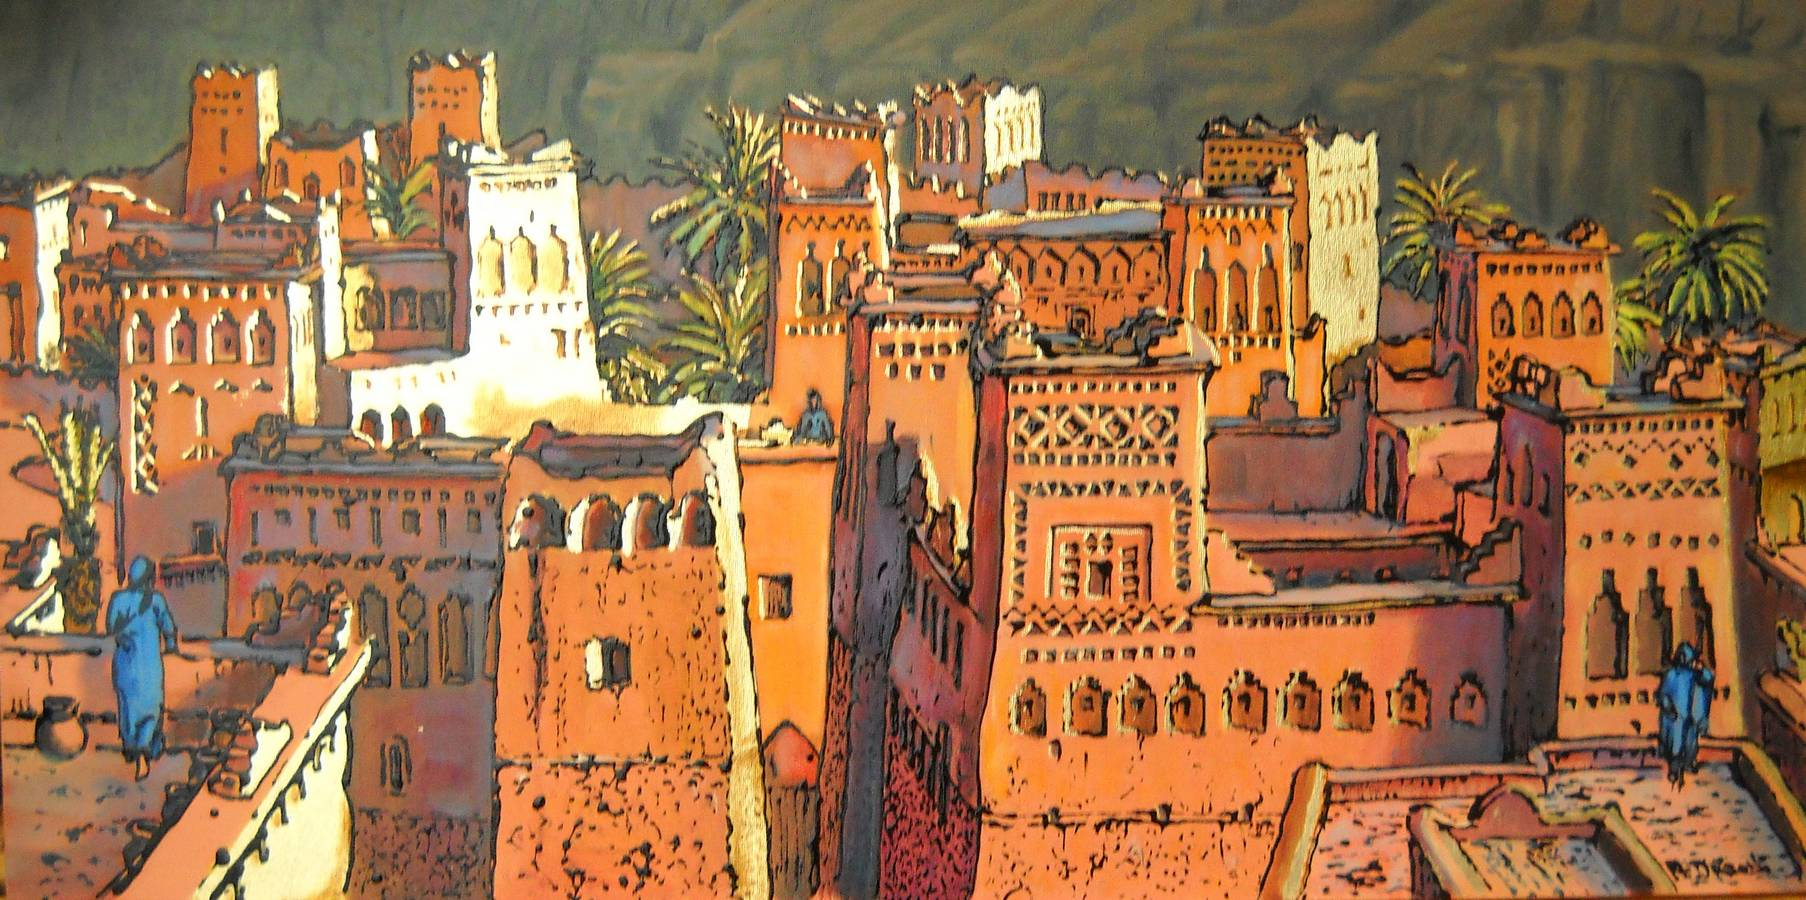 casbah tetti - 100x50 - acrylic and glaze on canvas - 2011